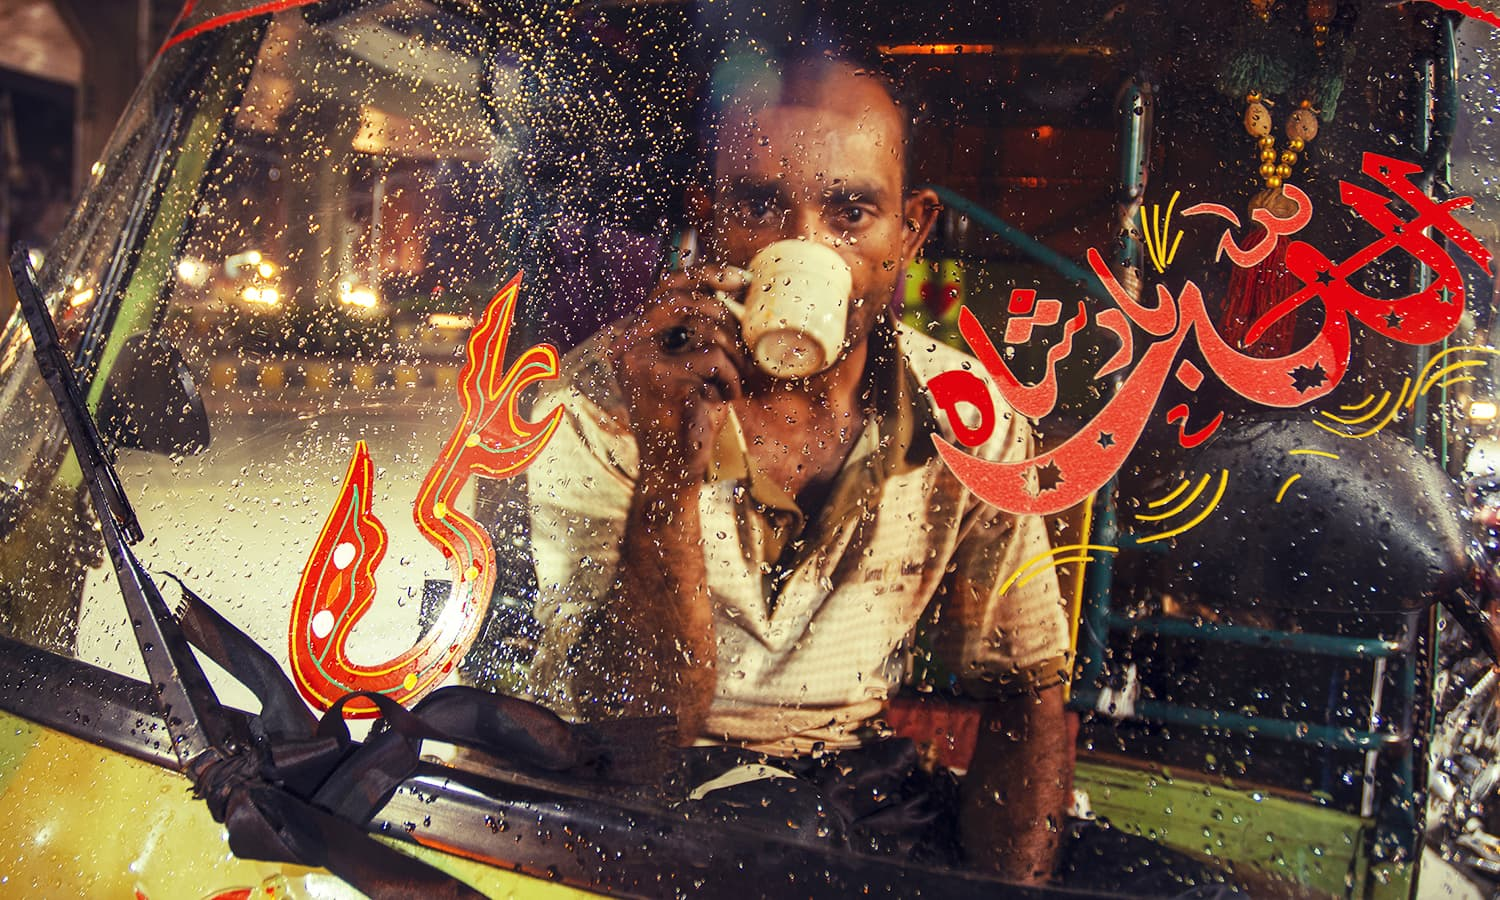 A rickshaw driver in Lahore enjoying a brief moment of solitude. In the 1990s, tongas and buggies were replaced by noisy vehicles. —Photo by Khalil Shah/The copyrights of the image are the sole property of the photographer and cannot be re-sold or transferred in any way.